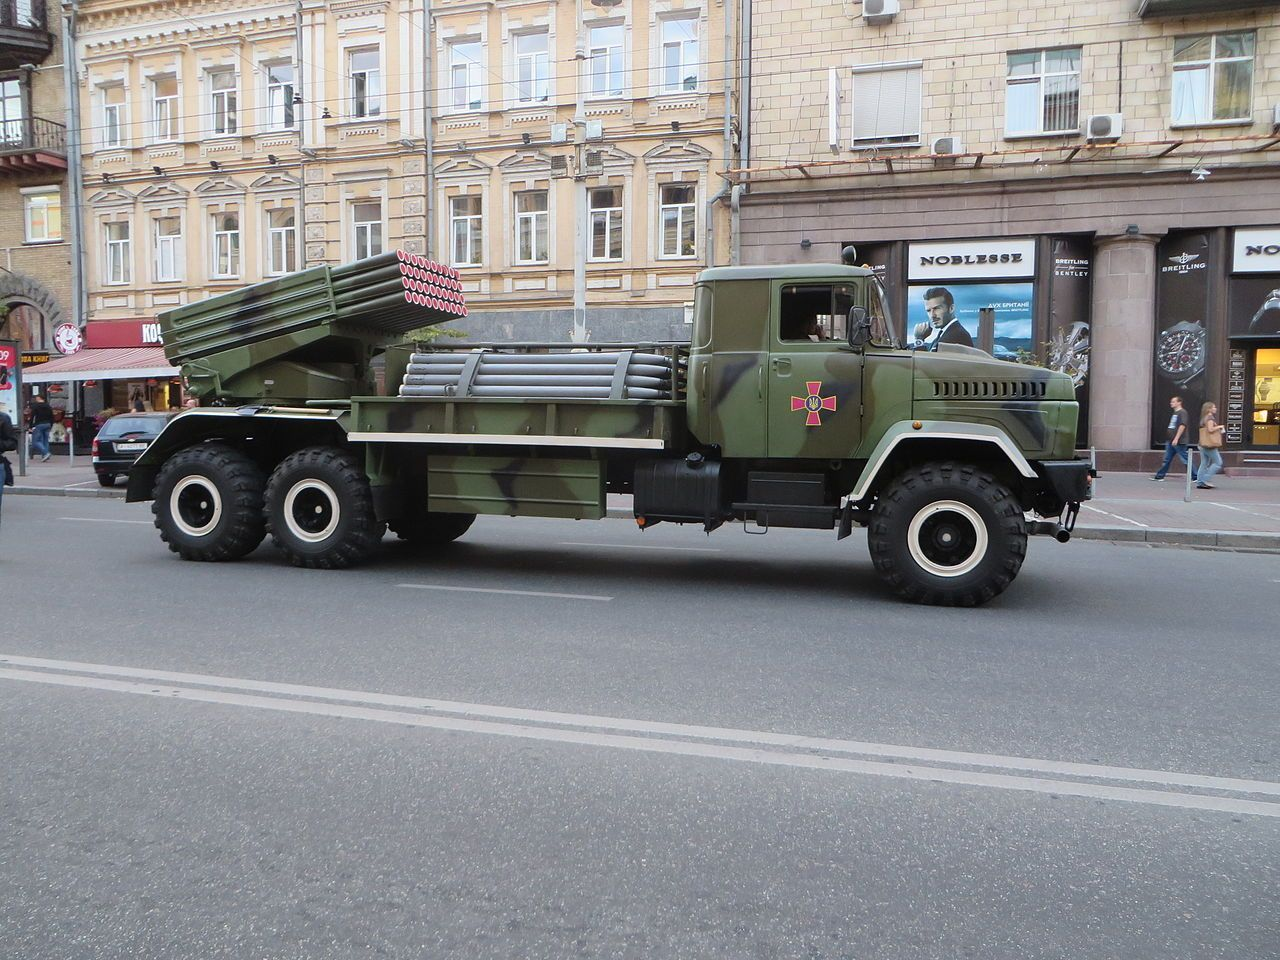 ukrainian_bm-21_grad_bastion-01_in_kyiv_ukraine_on_22_of_august_2014_img_7655_05_1___01